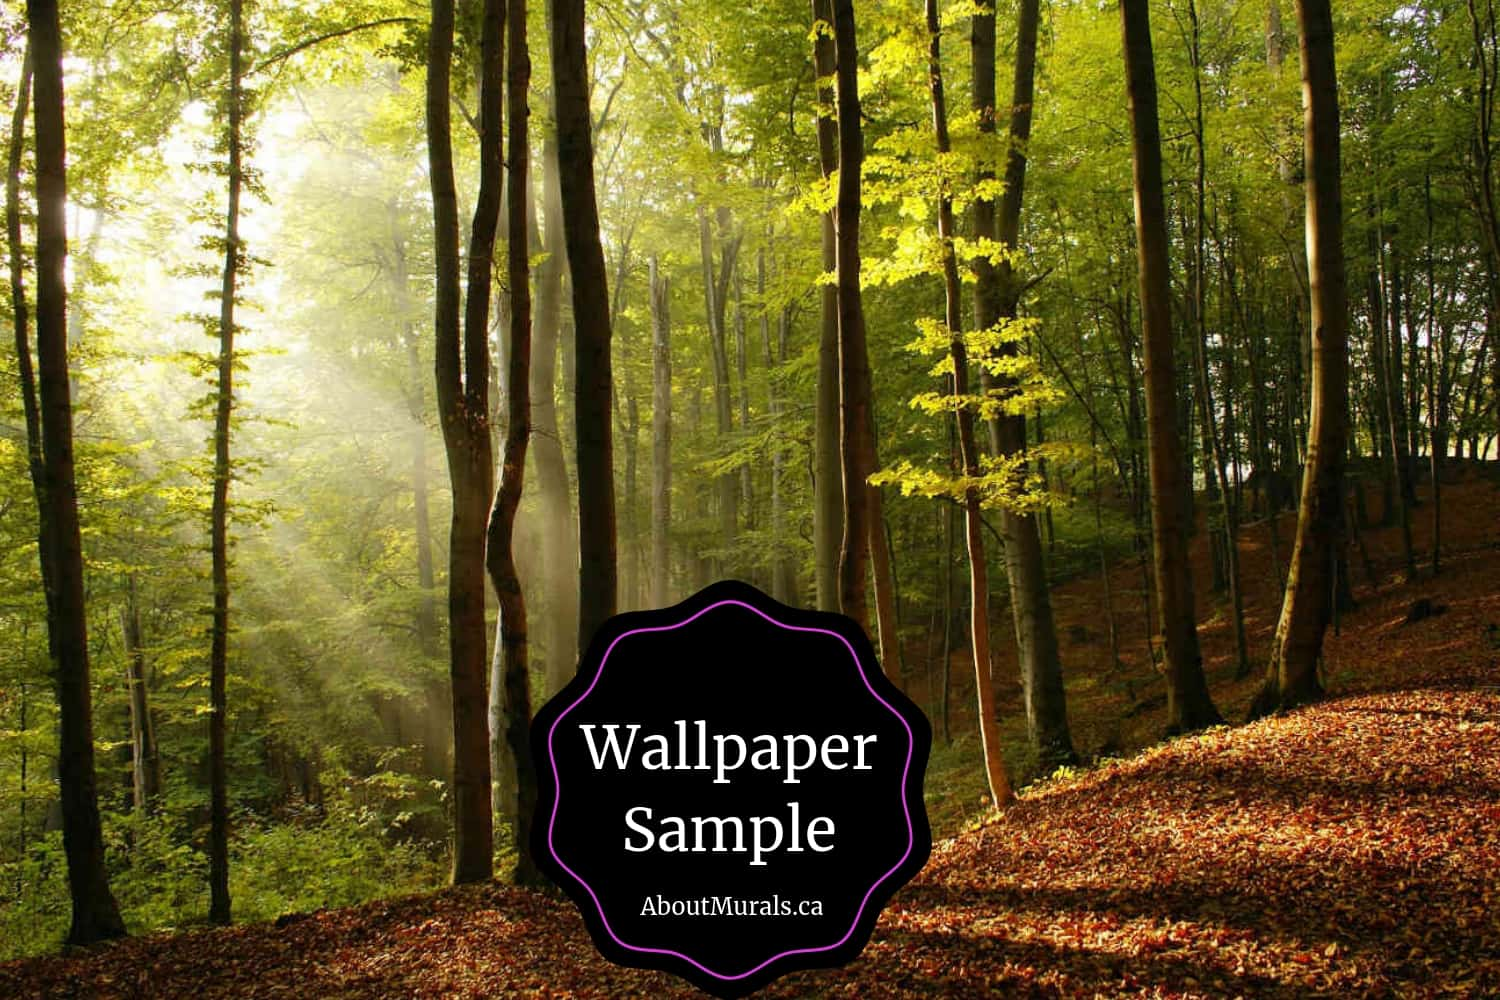 Sunbeams wallpaper sample sold by AboutMurals.ca featuring rays of sunshine diffusing through a forest canopy